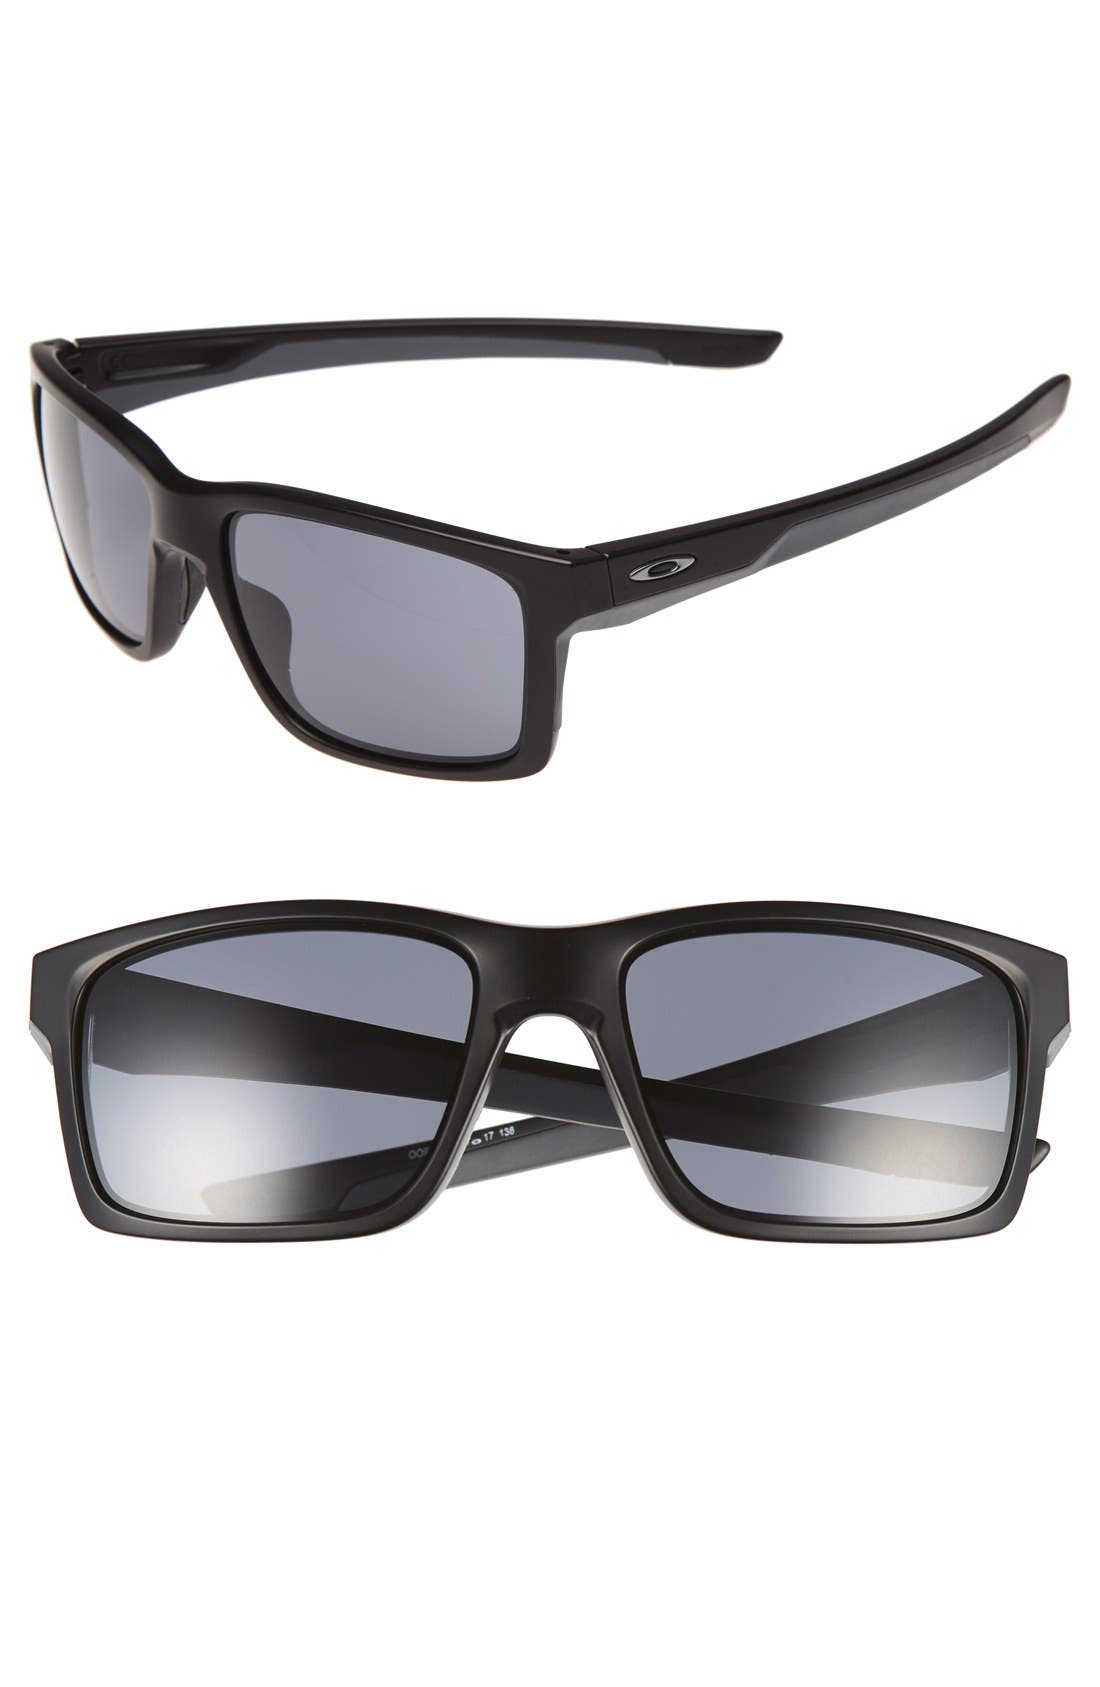 Main Image - Oakley 'Mainlink' 57mm Sunglasses